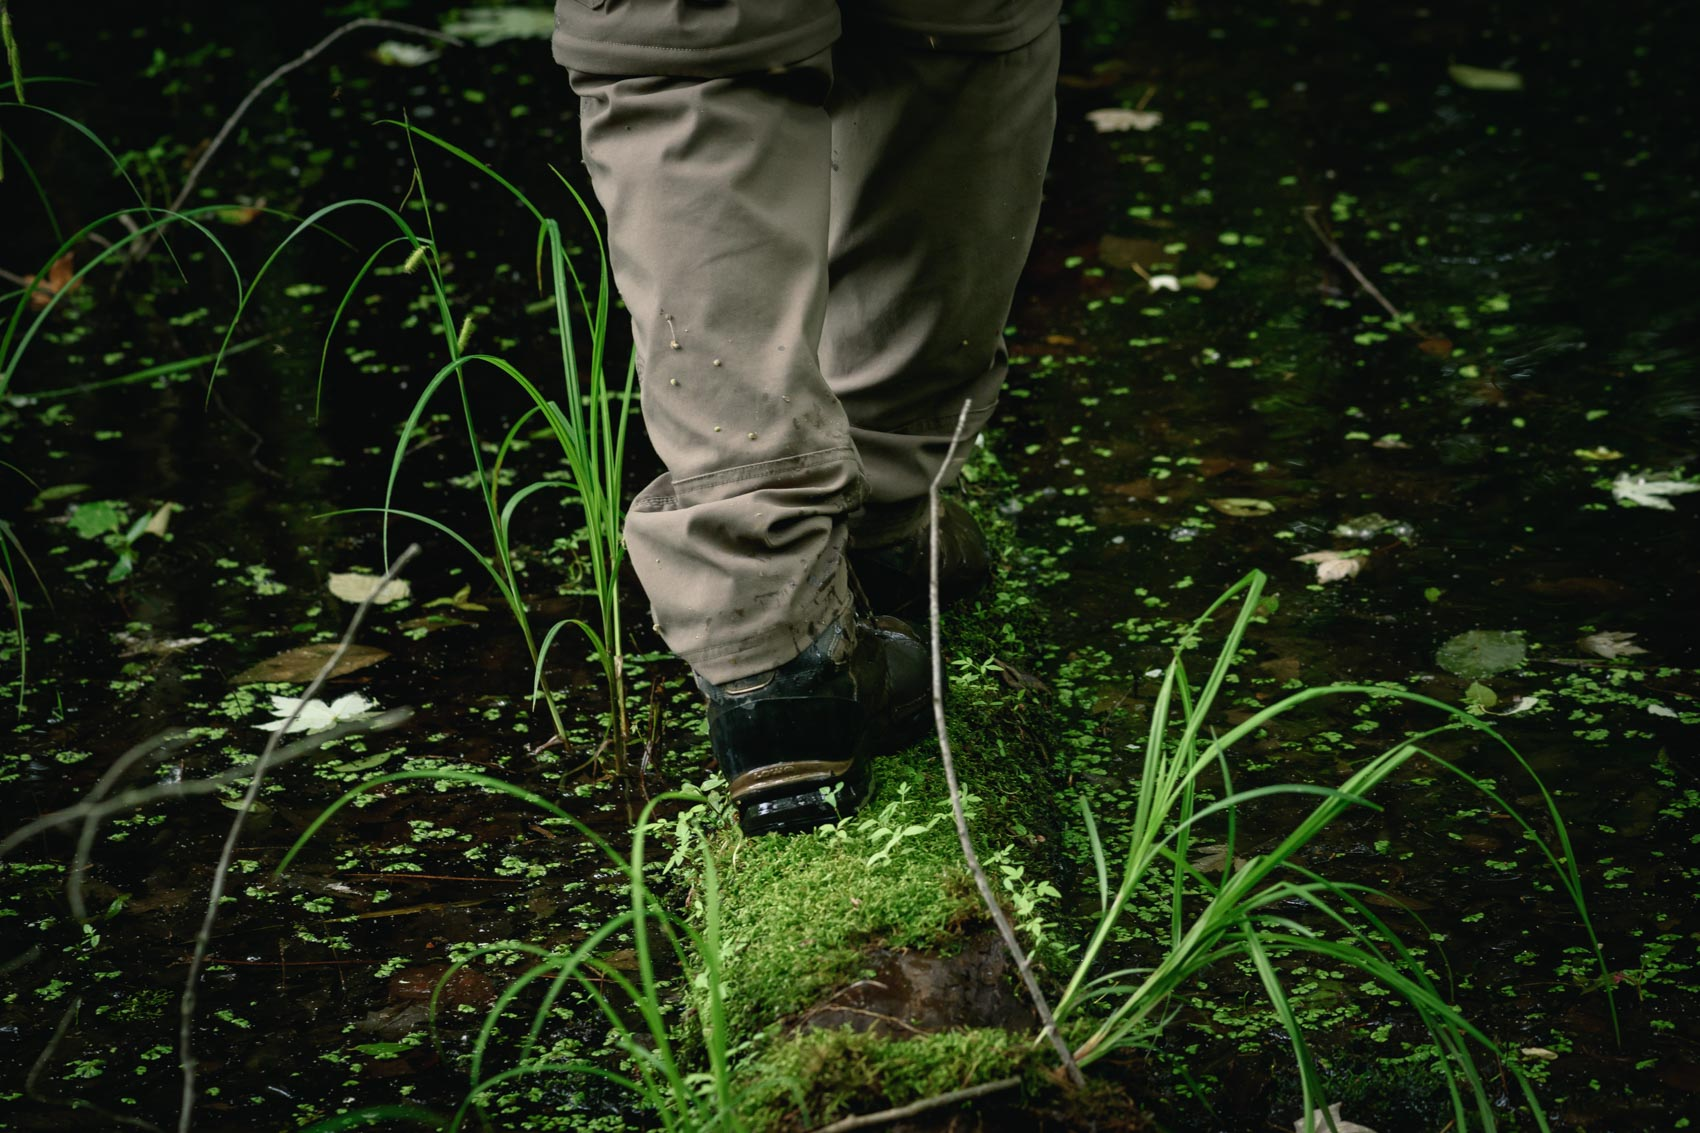 A boot walking across a mossy log in a swamp